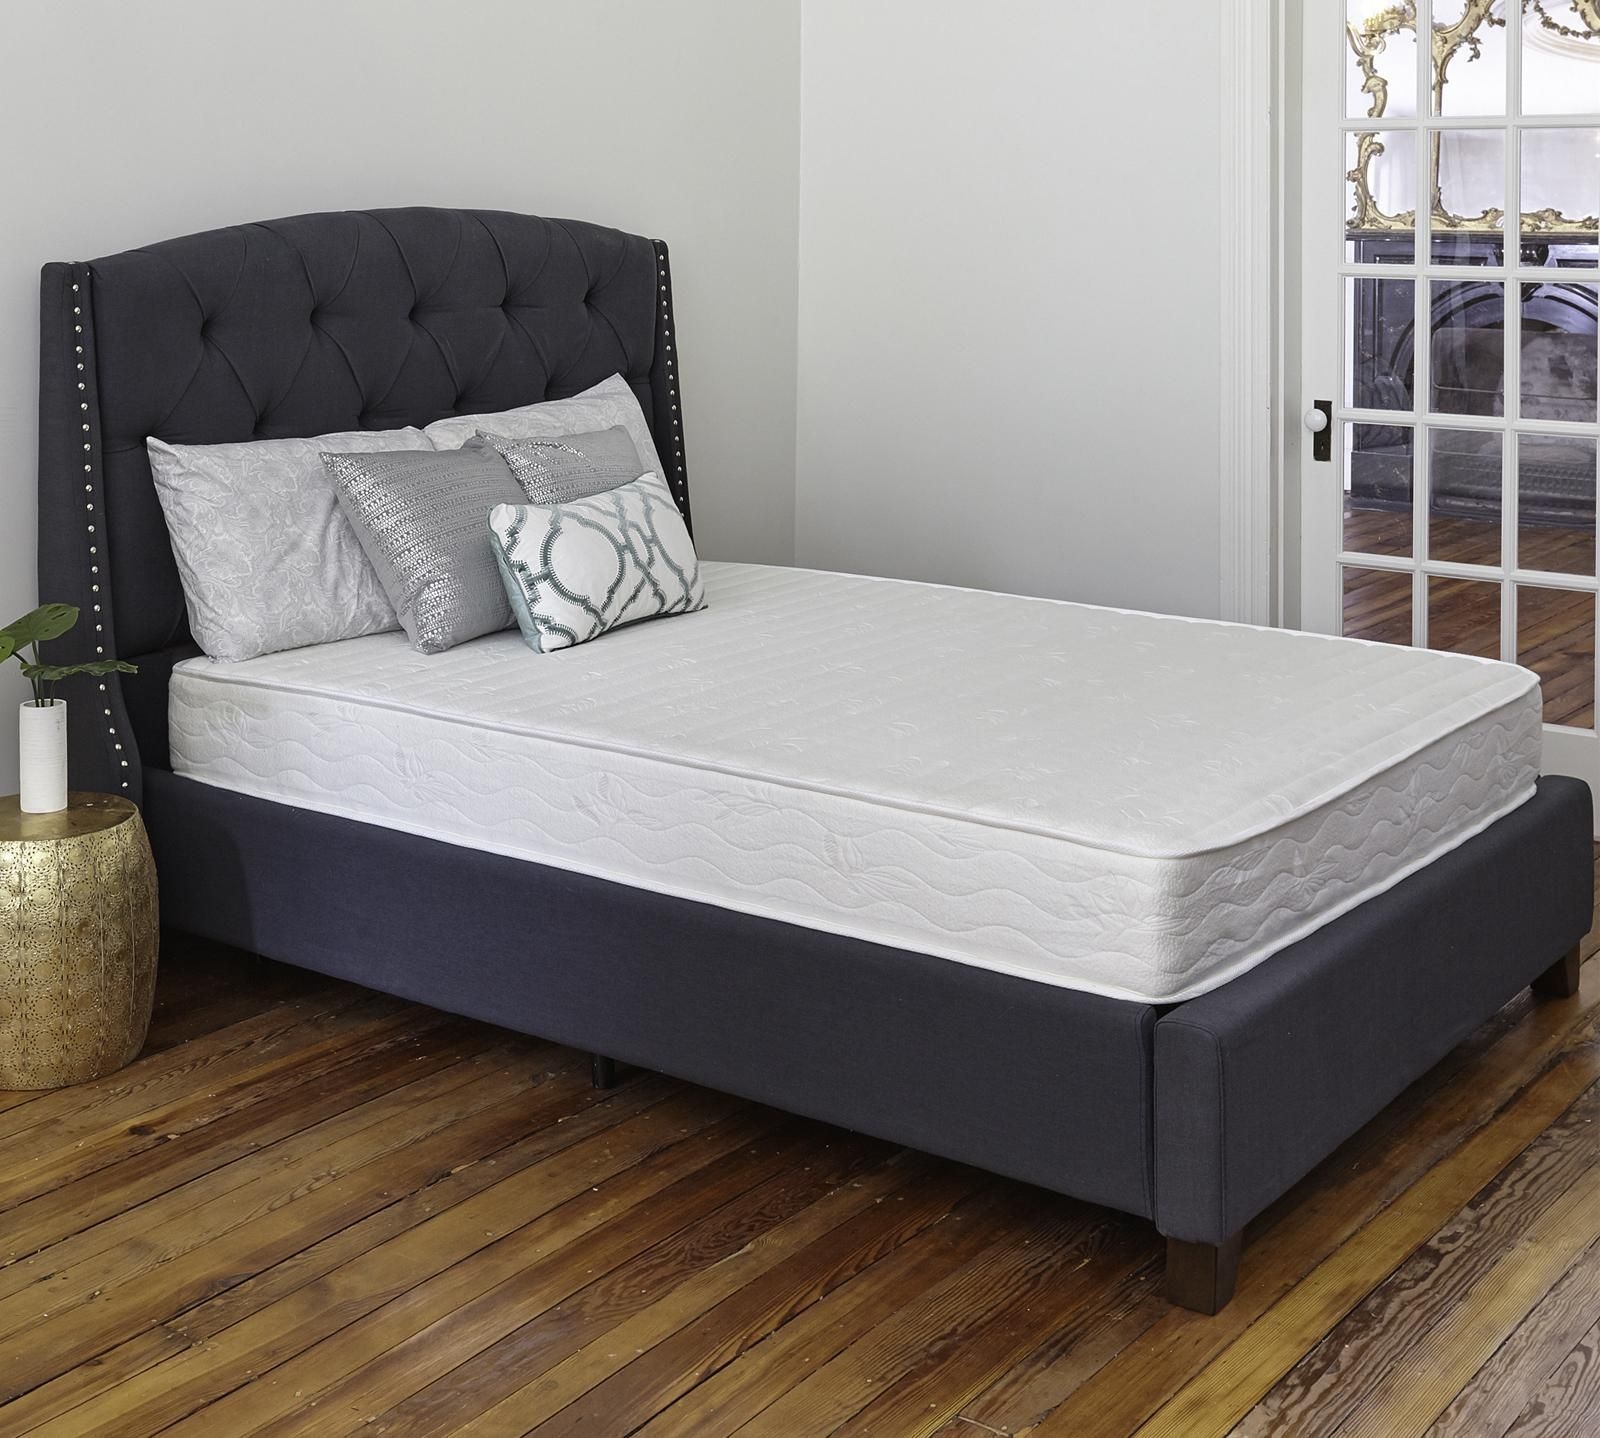 Shop For Your Hampton And Rhodes Perth 8 Innerspring Mattress At